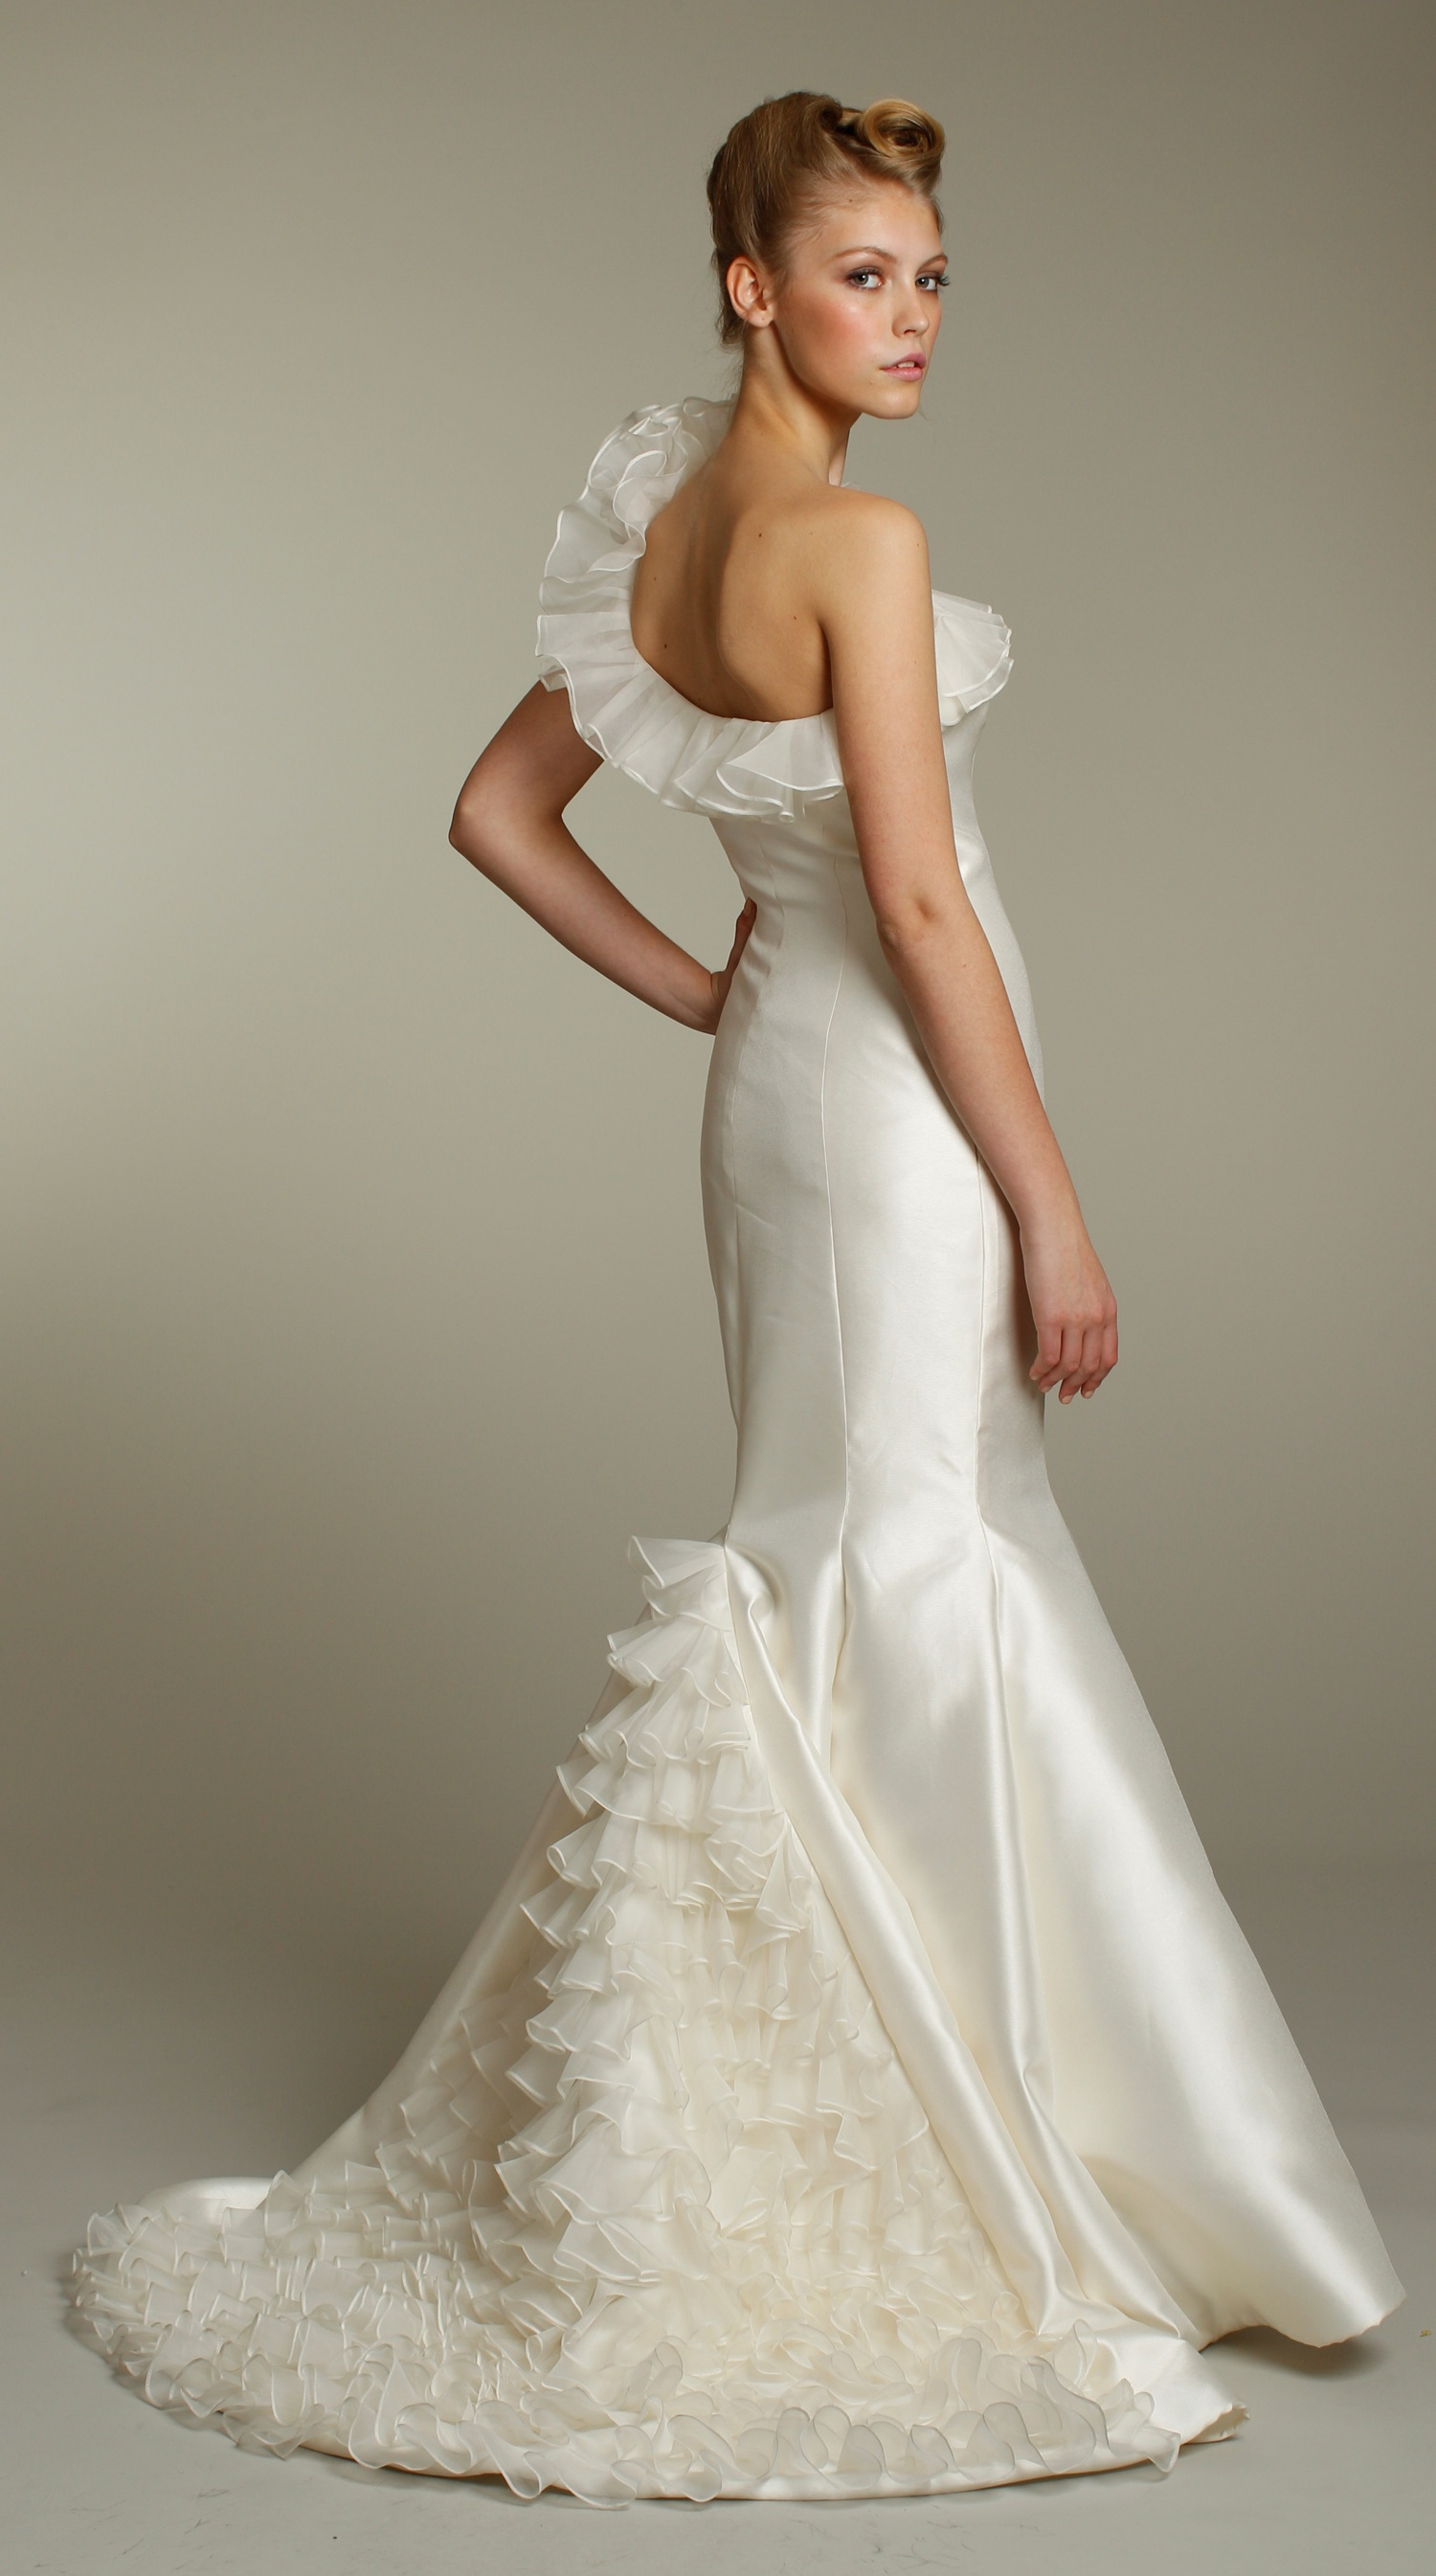 2156-wedding-dress-2011-bridal-gowns-mermaid-one-shoulder-ruffles-back.original